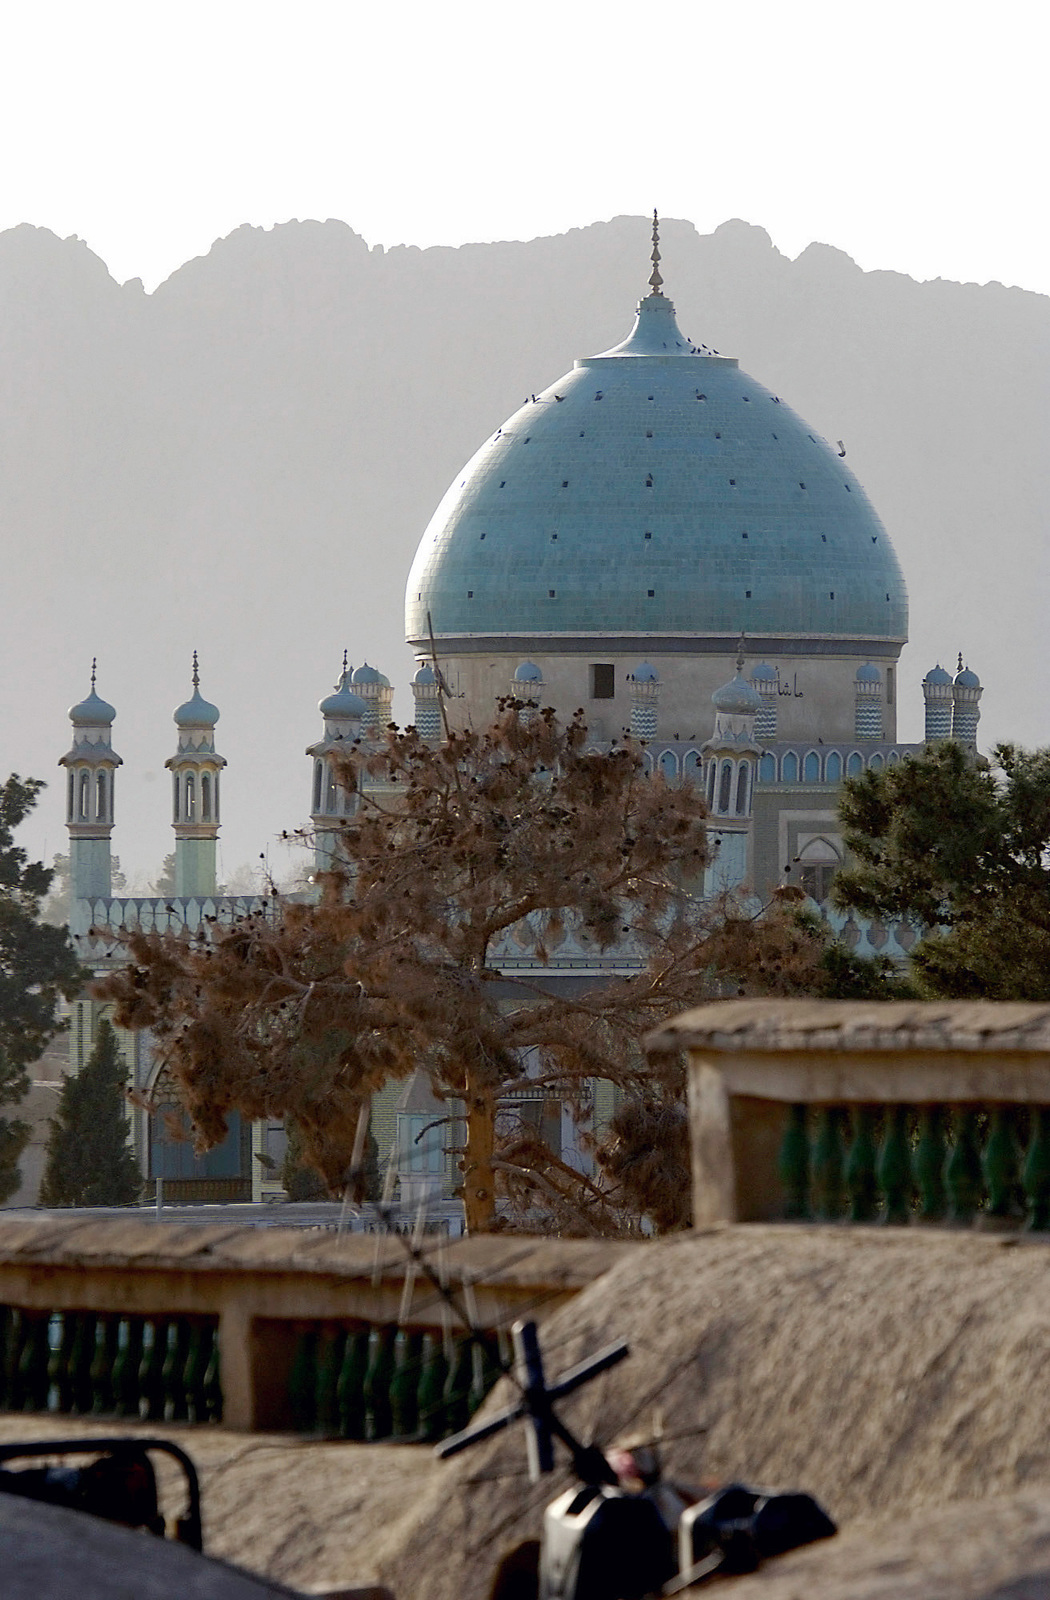 From the roof of the governors palace soldiers get a view of a mosque in downtown Kandahar City, Afghanistan. The city is outside the perimeter of Kandahar Air Base where over 3,000 US soldiers are stationed in support of Operation ENDURING FREEDOM